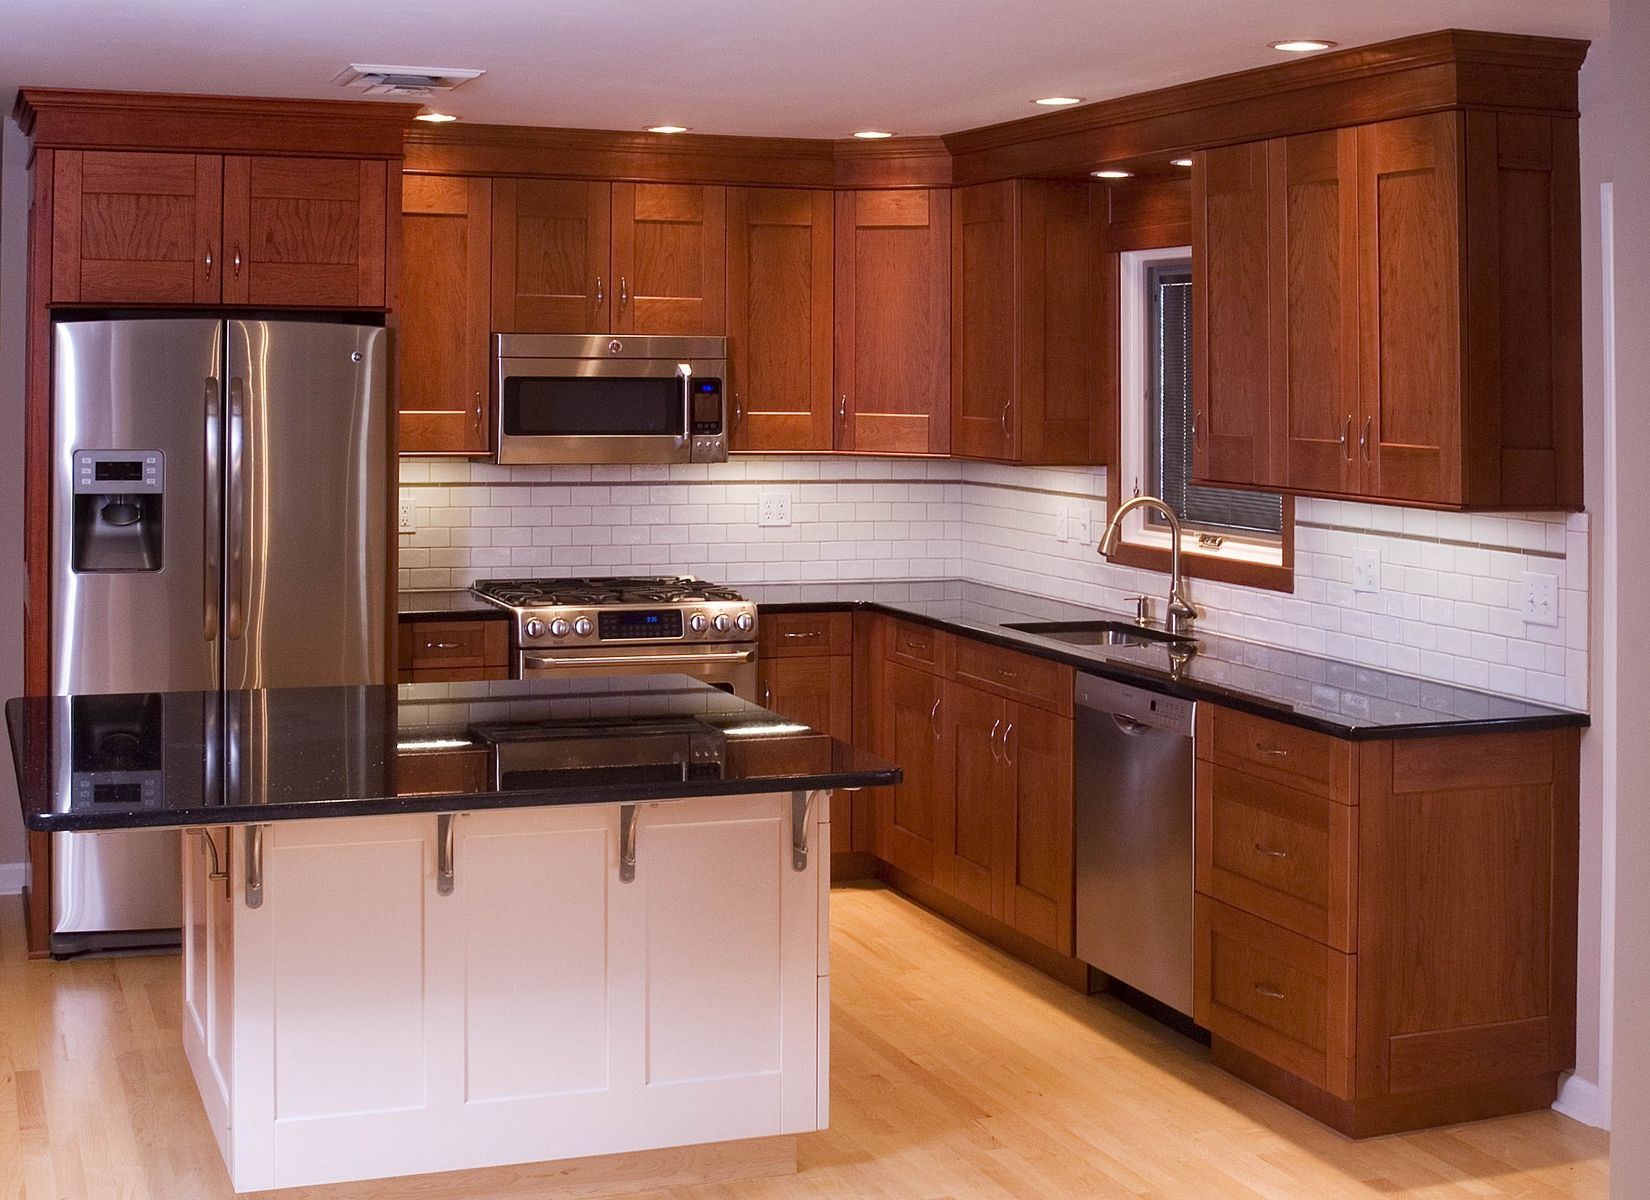 cherry kitchen cabinets - Cherry Kitchen Cabinets